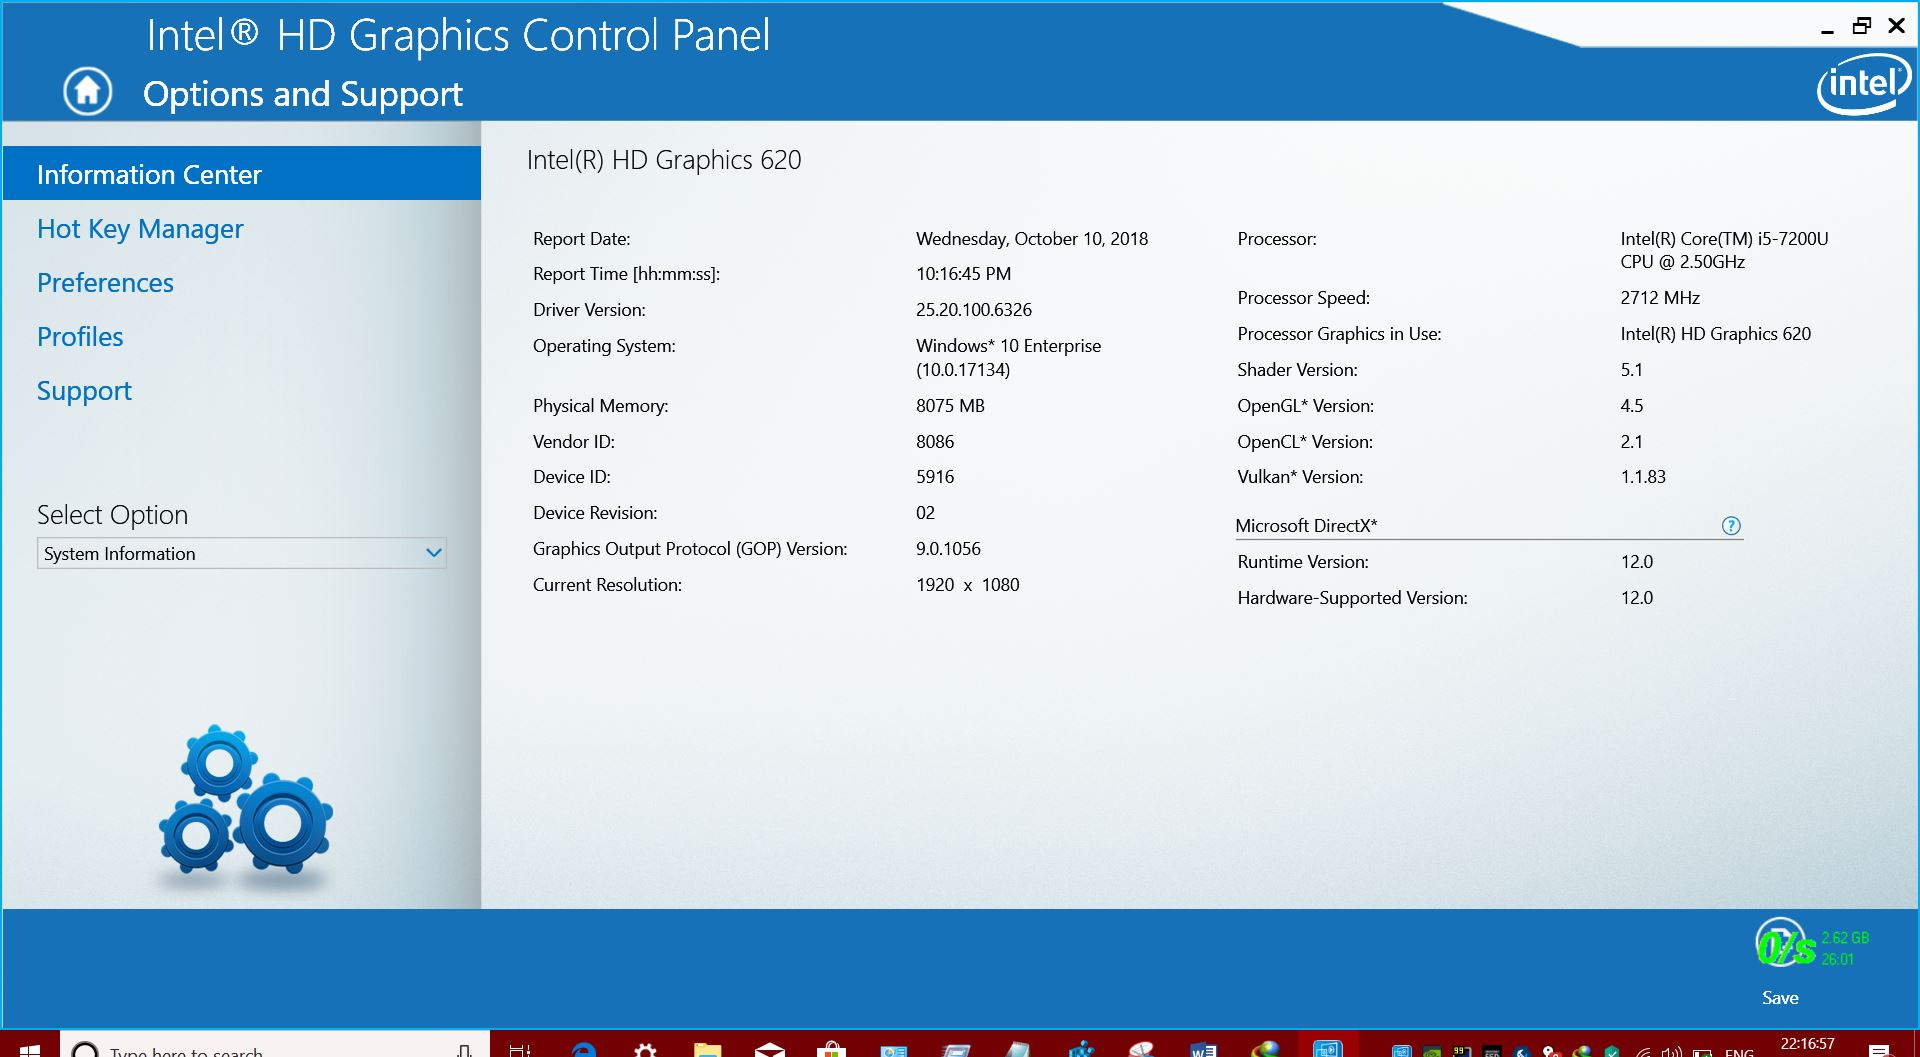 INTEL RELEASED GRAPHICS DRIVER V 25201006326 FOR WINDOWS 10 64